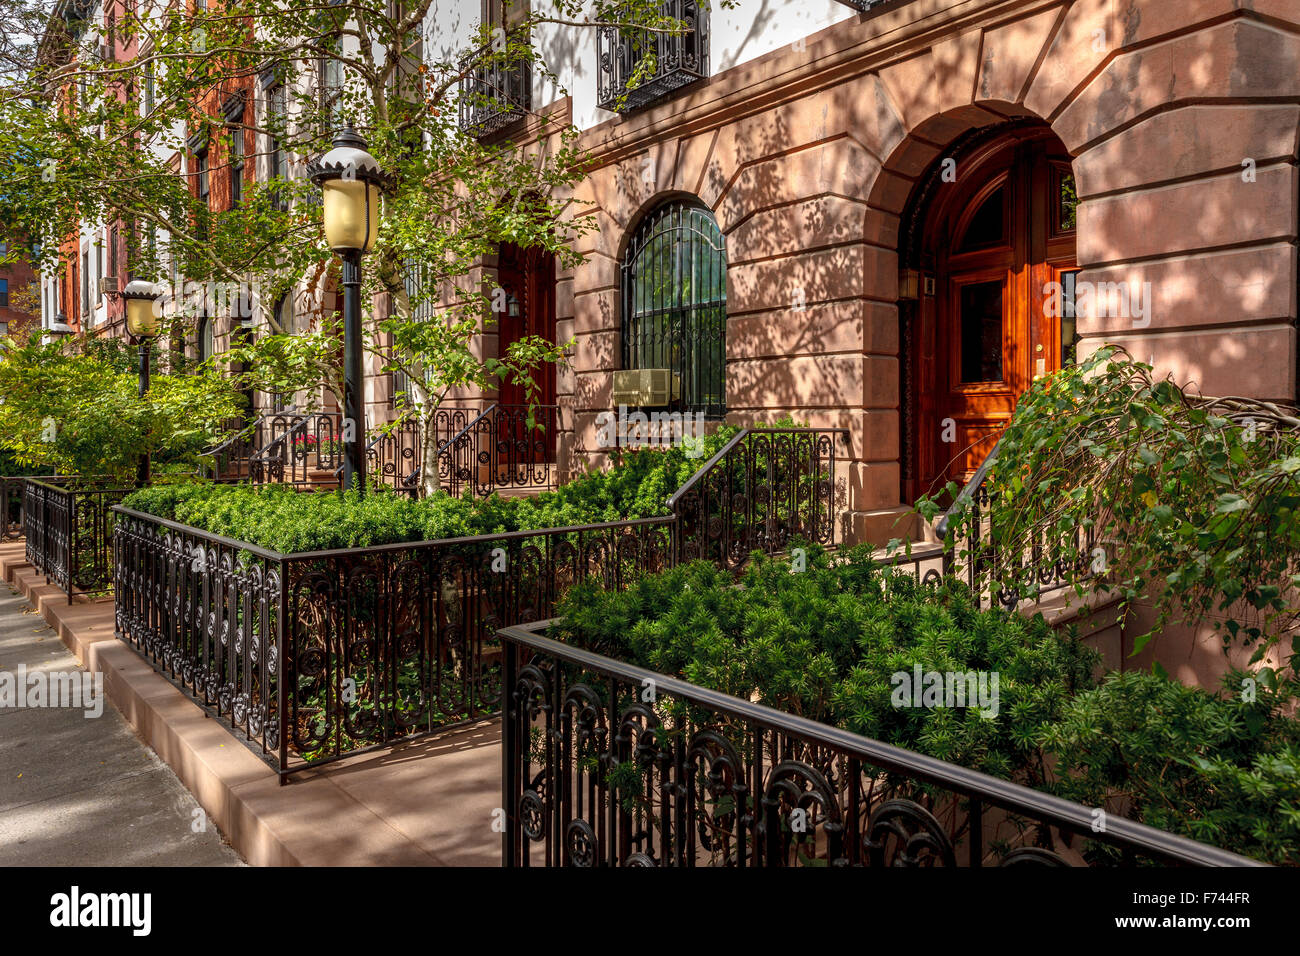 Row of townhouses and their lovely front yards and lampposts. Afternoon light in Chelsea, Manhattan, New York City. - Stock Image